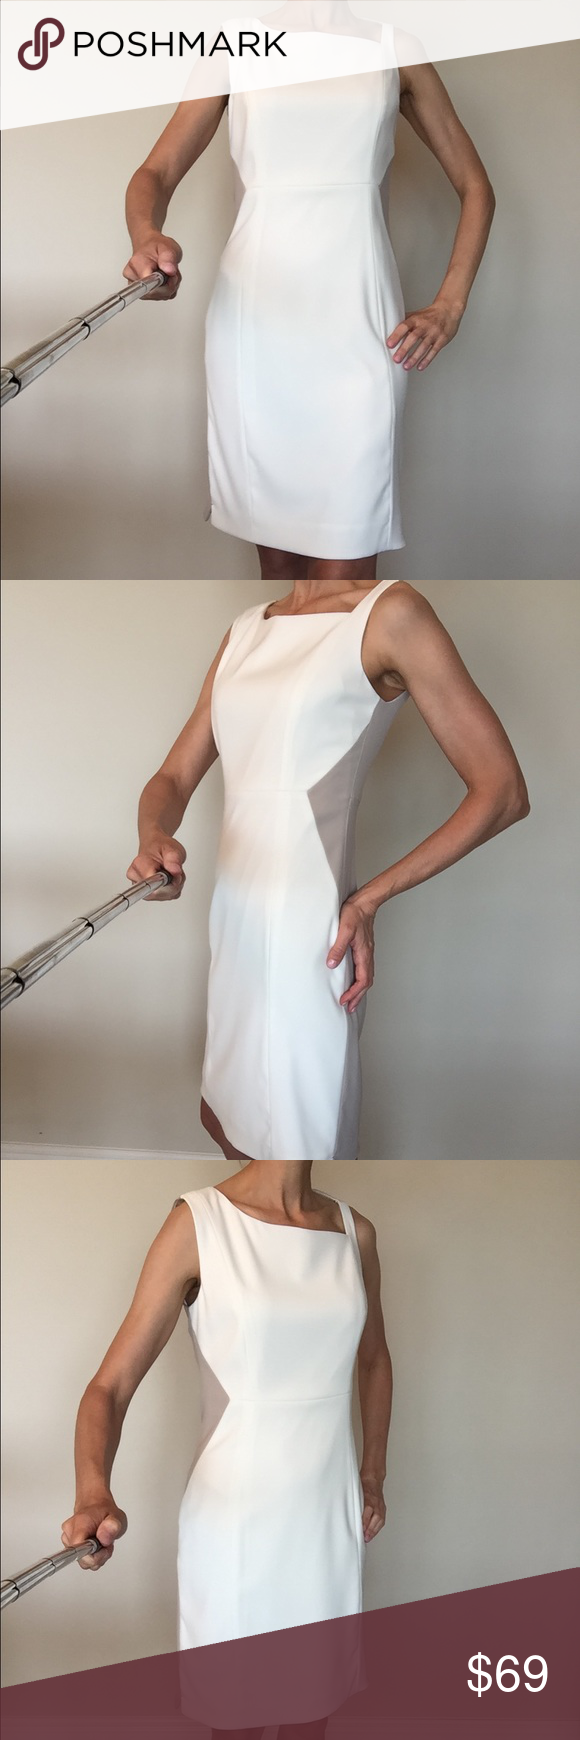 33f66233a660 Off white and taupe Elie Tahari dress Off white front and taupe color back  with gold zipper Elie Tahari dress. No stains or rips, excellent condition.